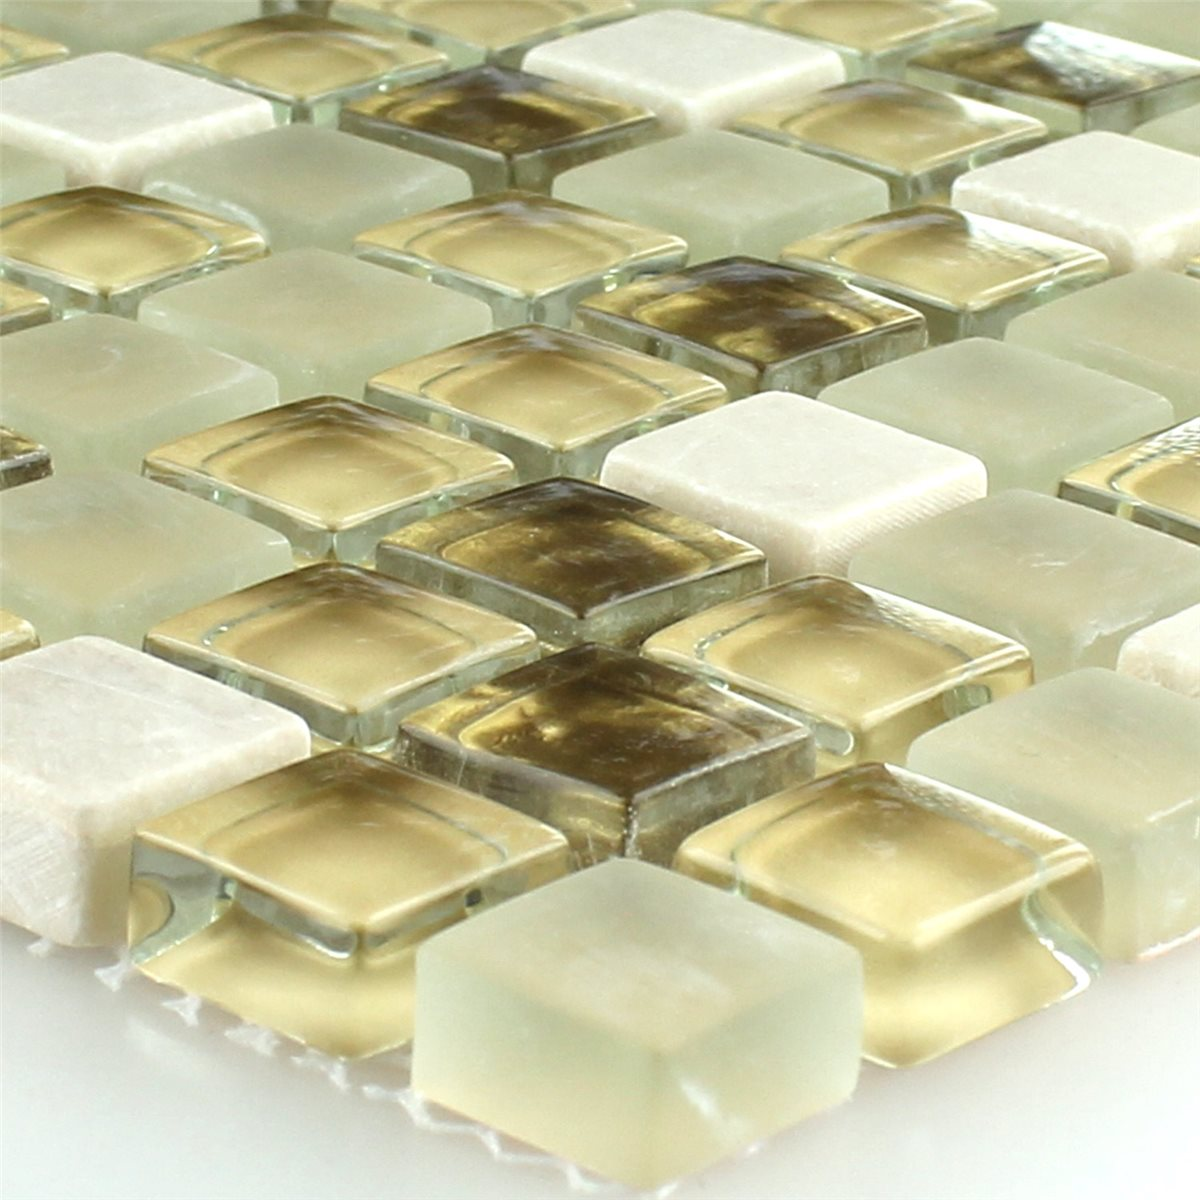 glass natural stone mosaic tiles white gold mix www. Black Bedroom Furniture Sets. Home Design Ideas